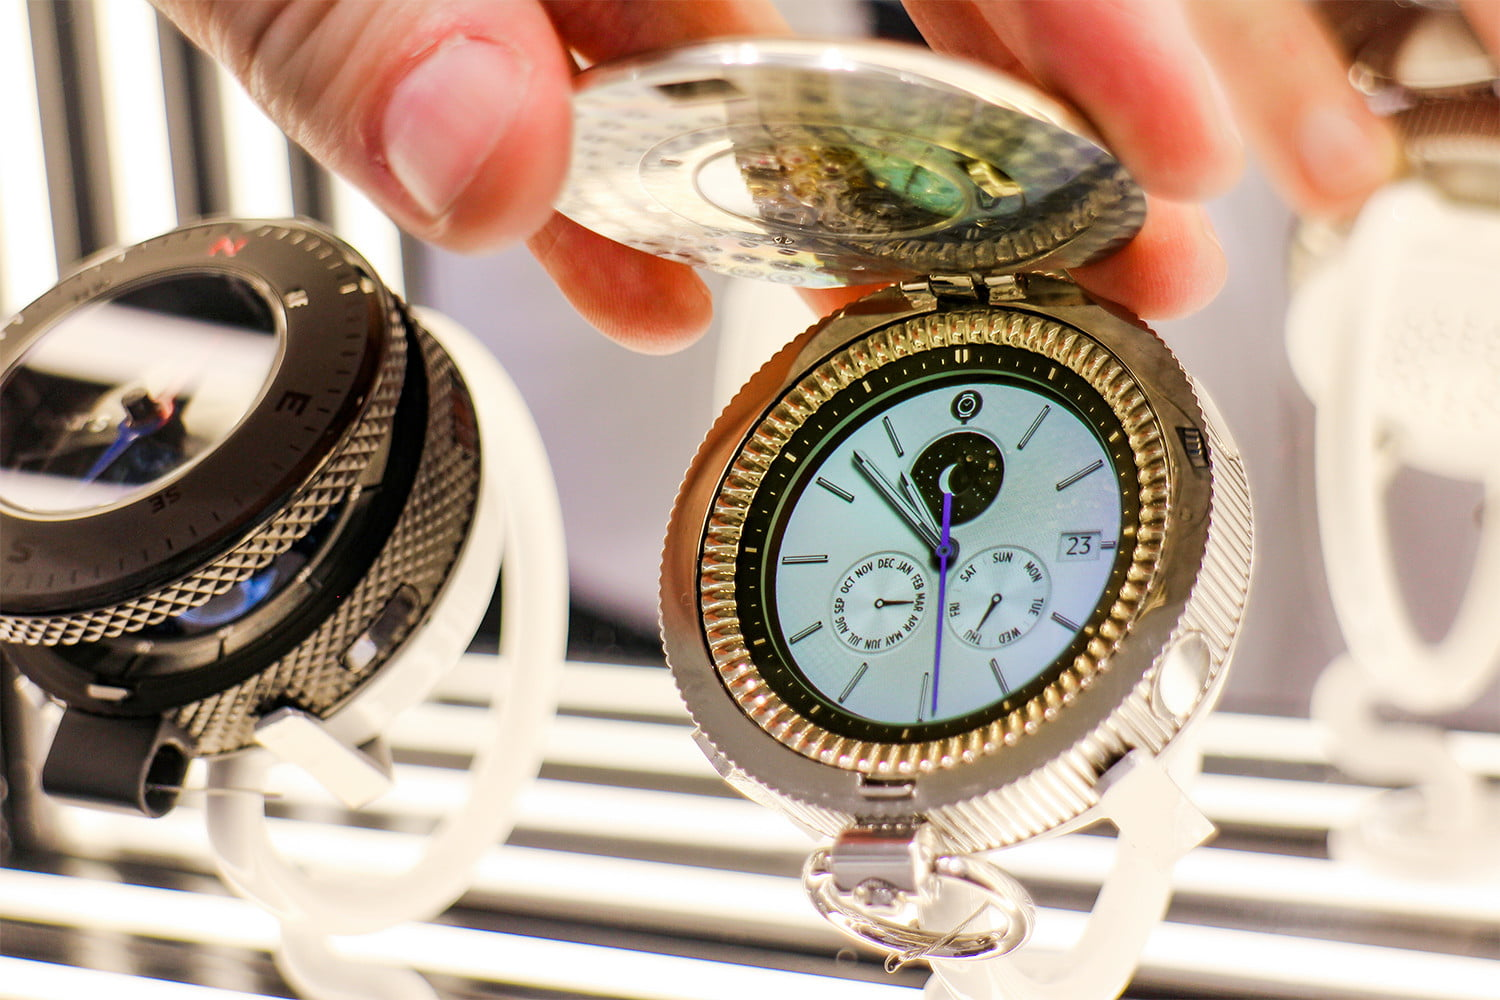 eb2a85e4df9 Samsung s Gear S3 Pocket Watch Is The Coolest Piece Of Retro Tech Yet